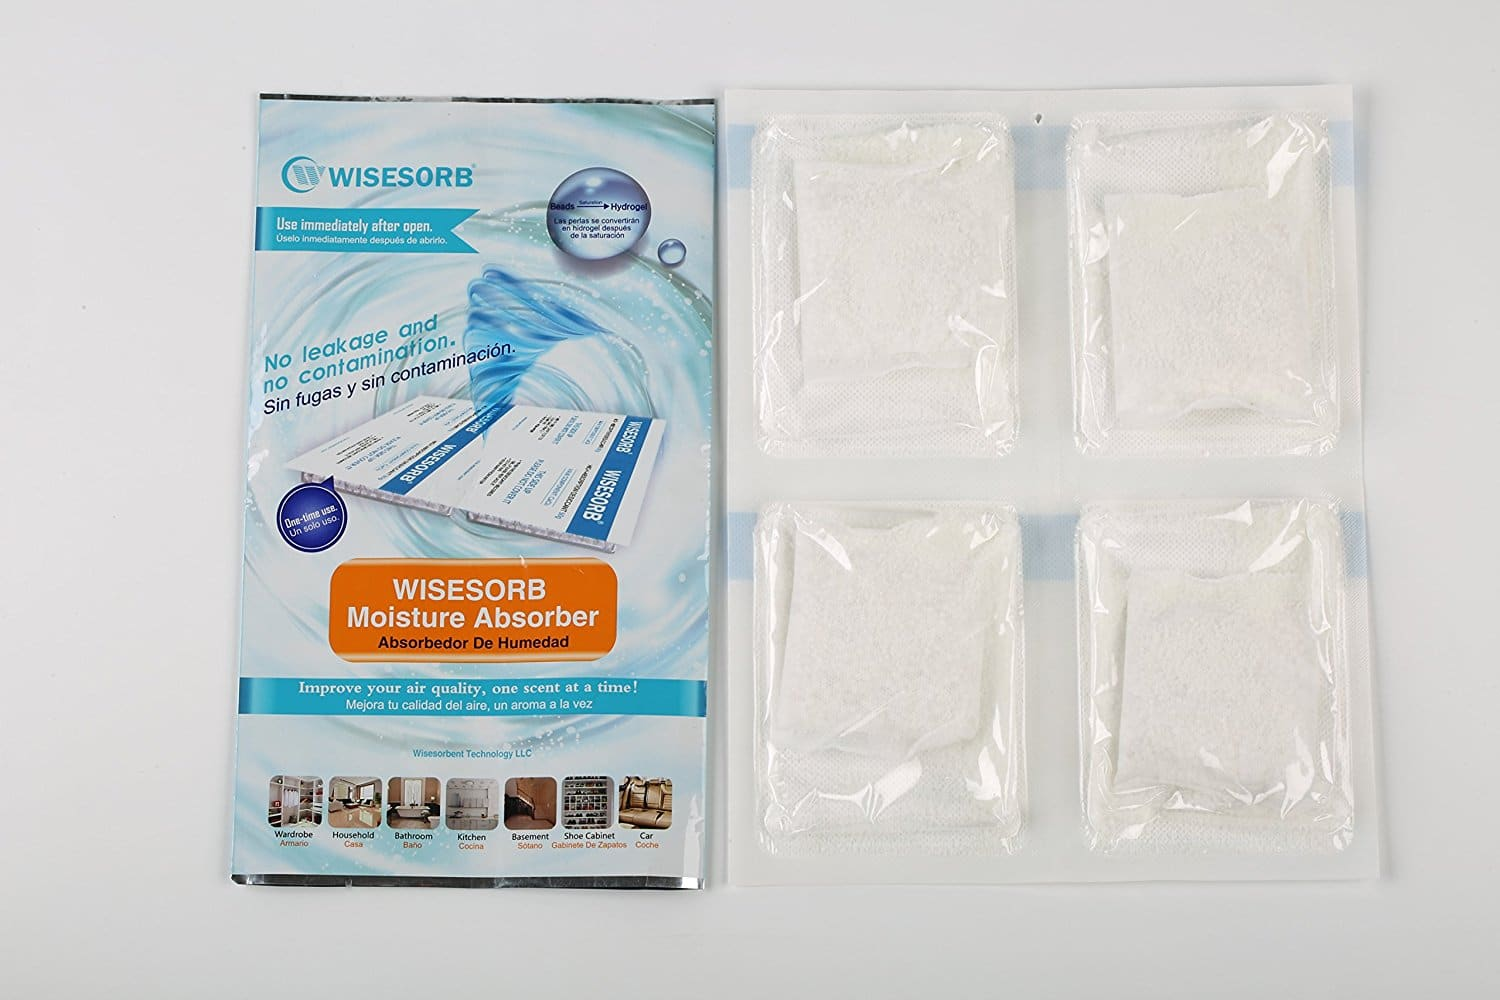 Wisesorb Moisture Absorber Multiple Use 200g | Wisesorbent Technology